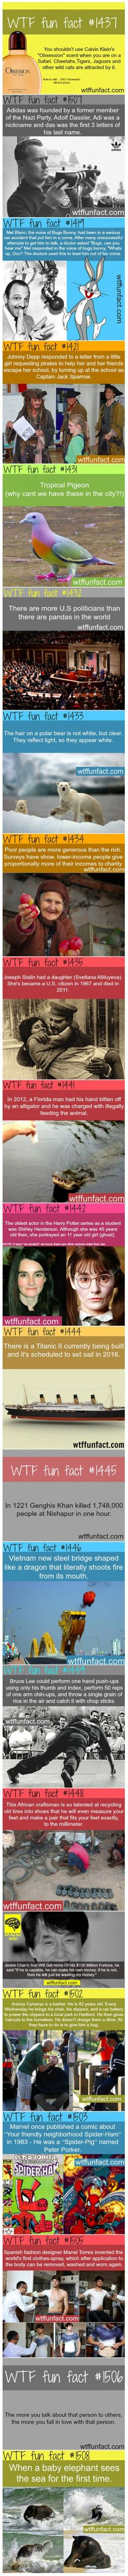 22 Fun and Interesting Facts You Won't Believe Are True - TechEBlog: Wtf Fun Fact, Baby Elephant, Crazy Fact, Wtffunfacts Funny, Wtffunfacts Weird, Interesting Fun Fact, Weird Fun Fact